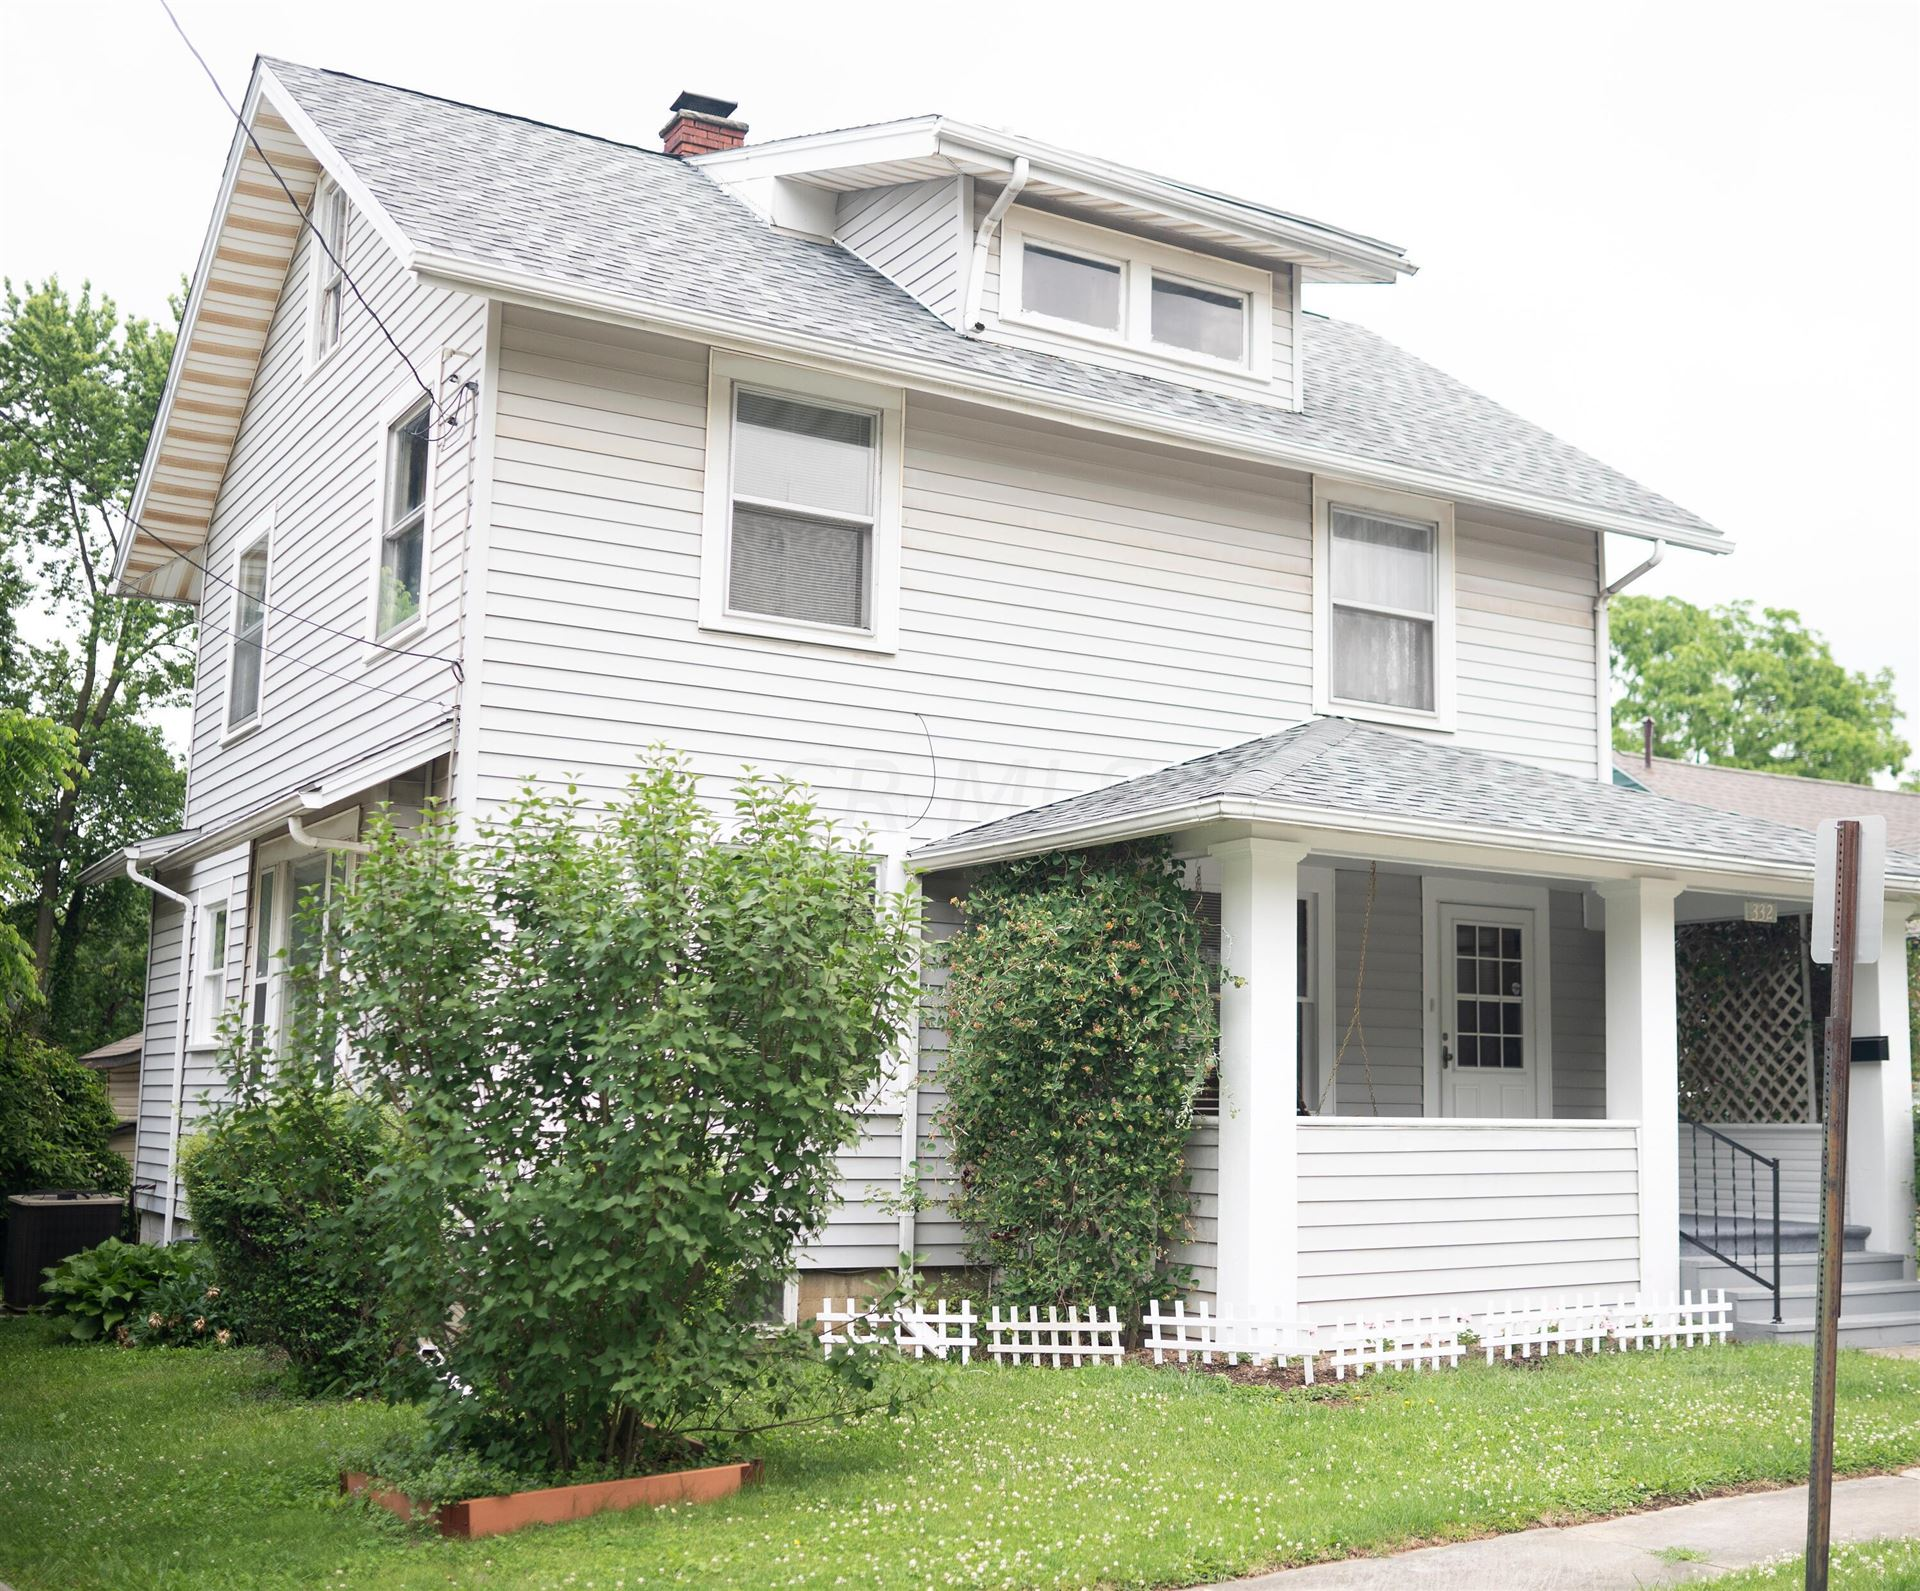 Photo for 332 Marion Avenue, Marion, OH 43302 (MLS # 221020484)